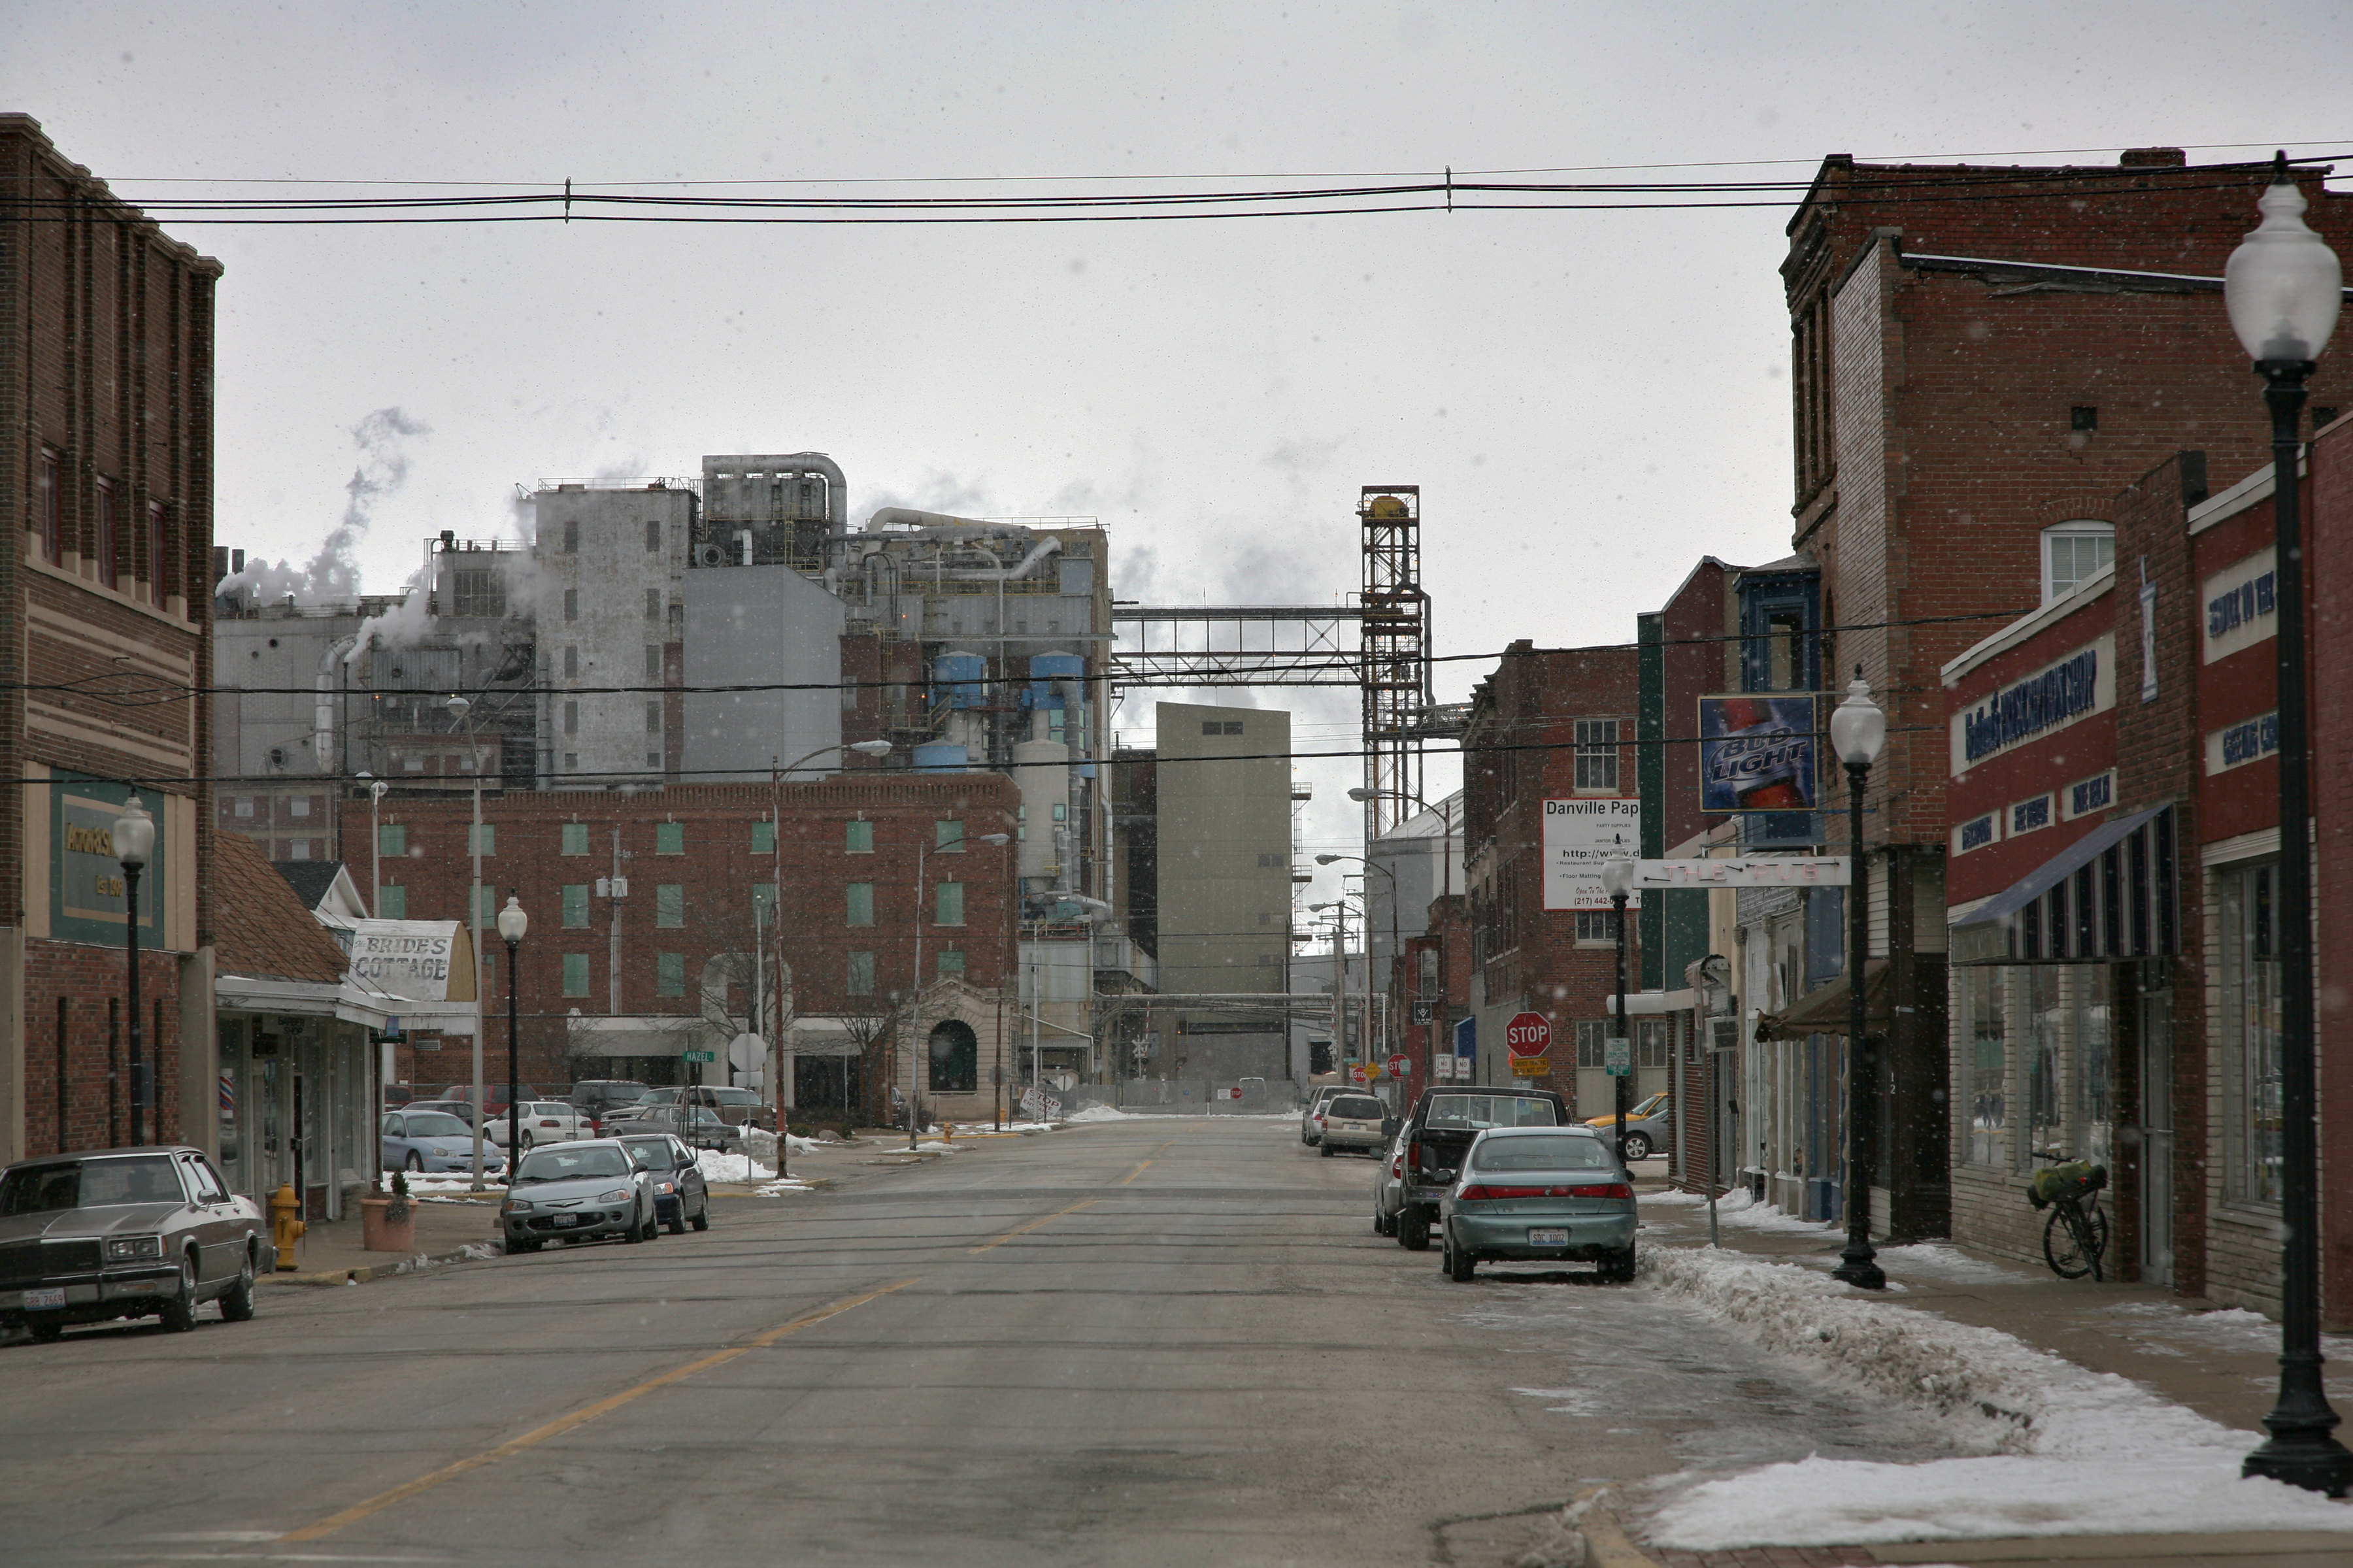 Danville (IL) United States  city images : Danville, IL grain mill